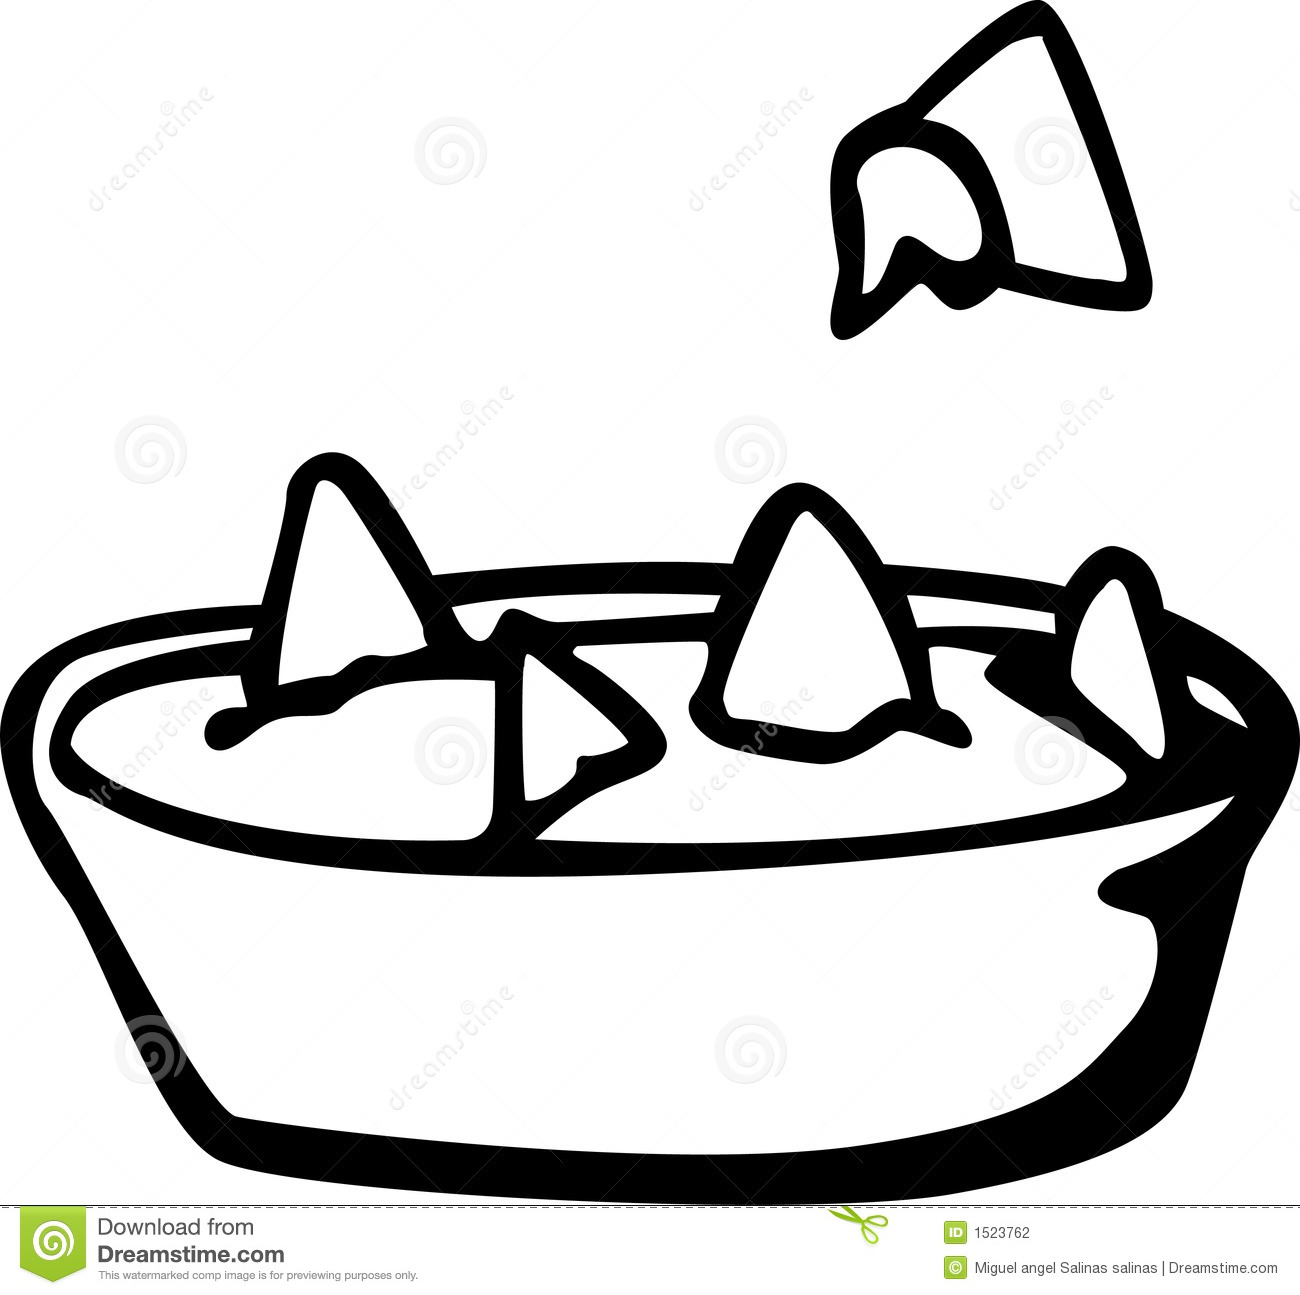 Nachos With Cheese Dish Vector Illustration Stock ...